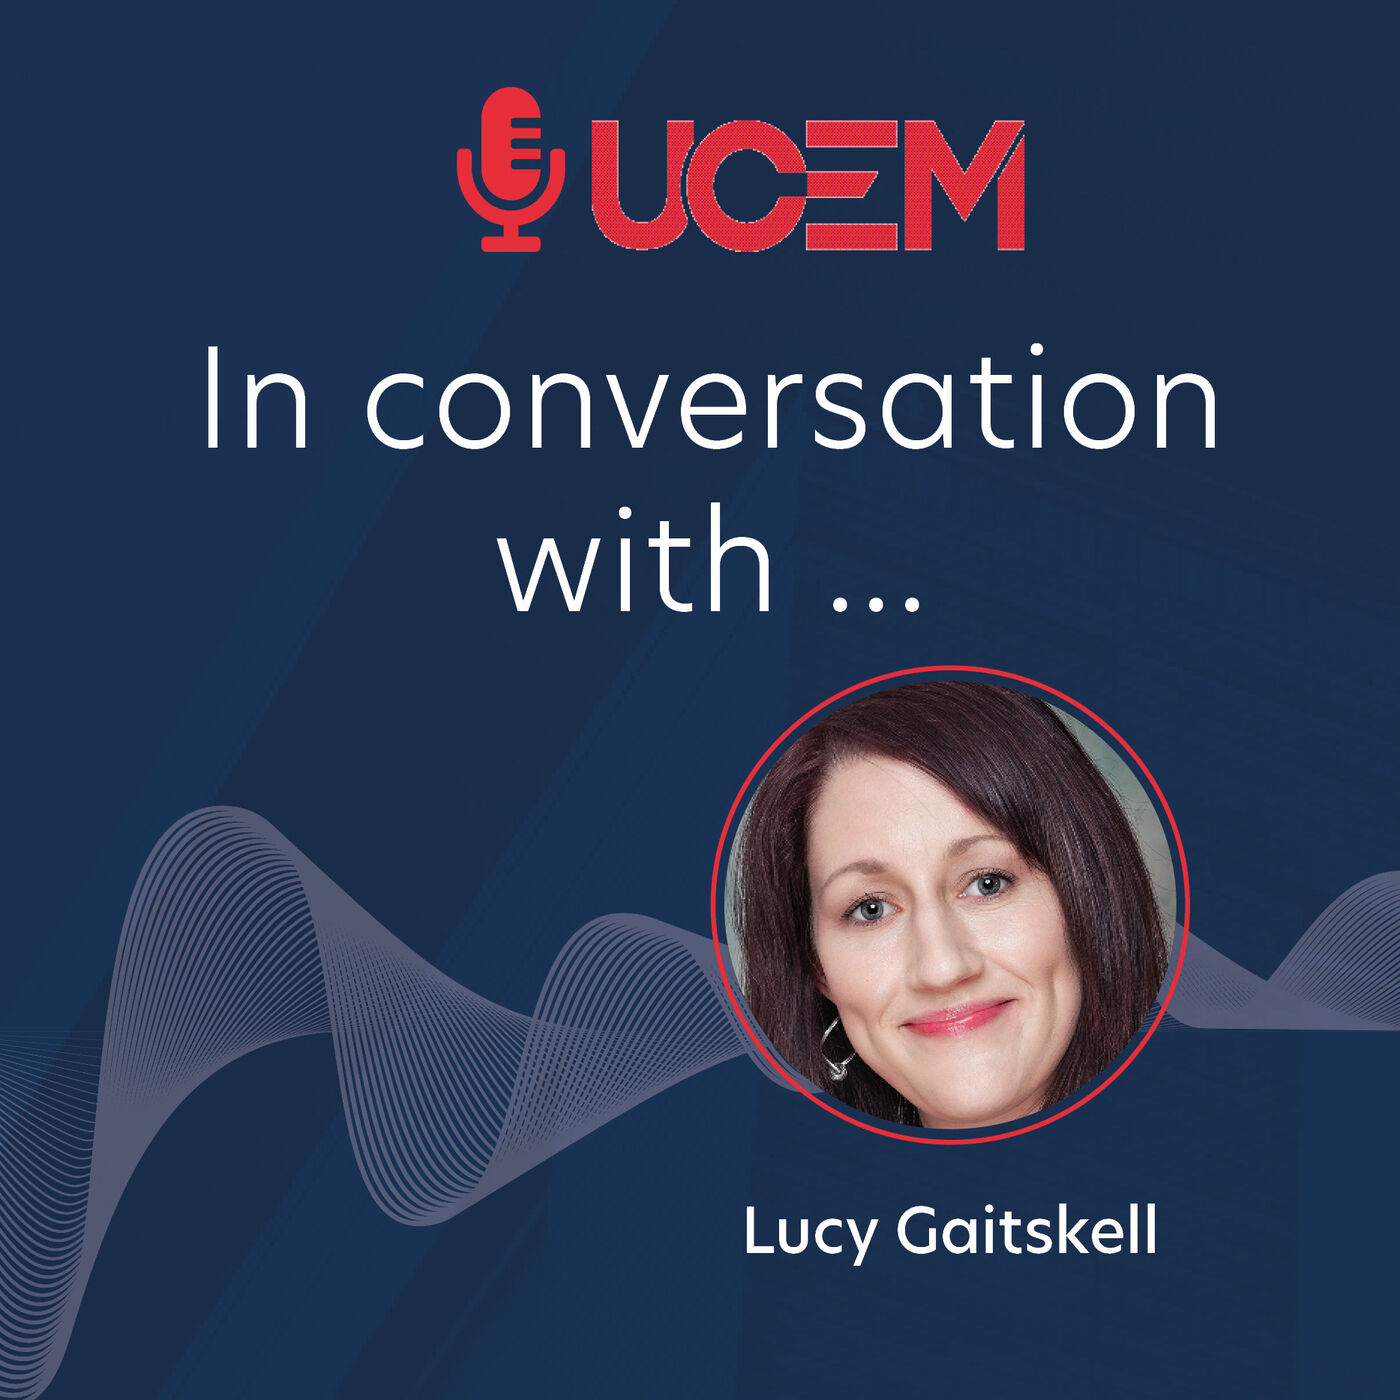 UCEM in conversation with... Lucy Gaitskell - Episode 9